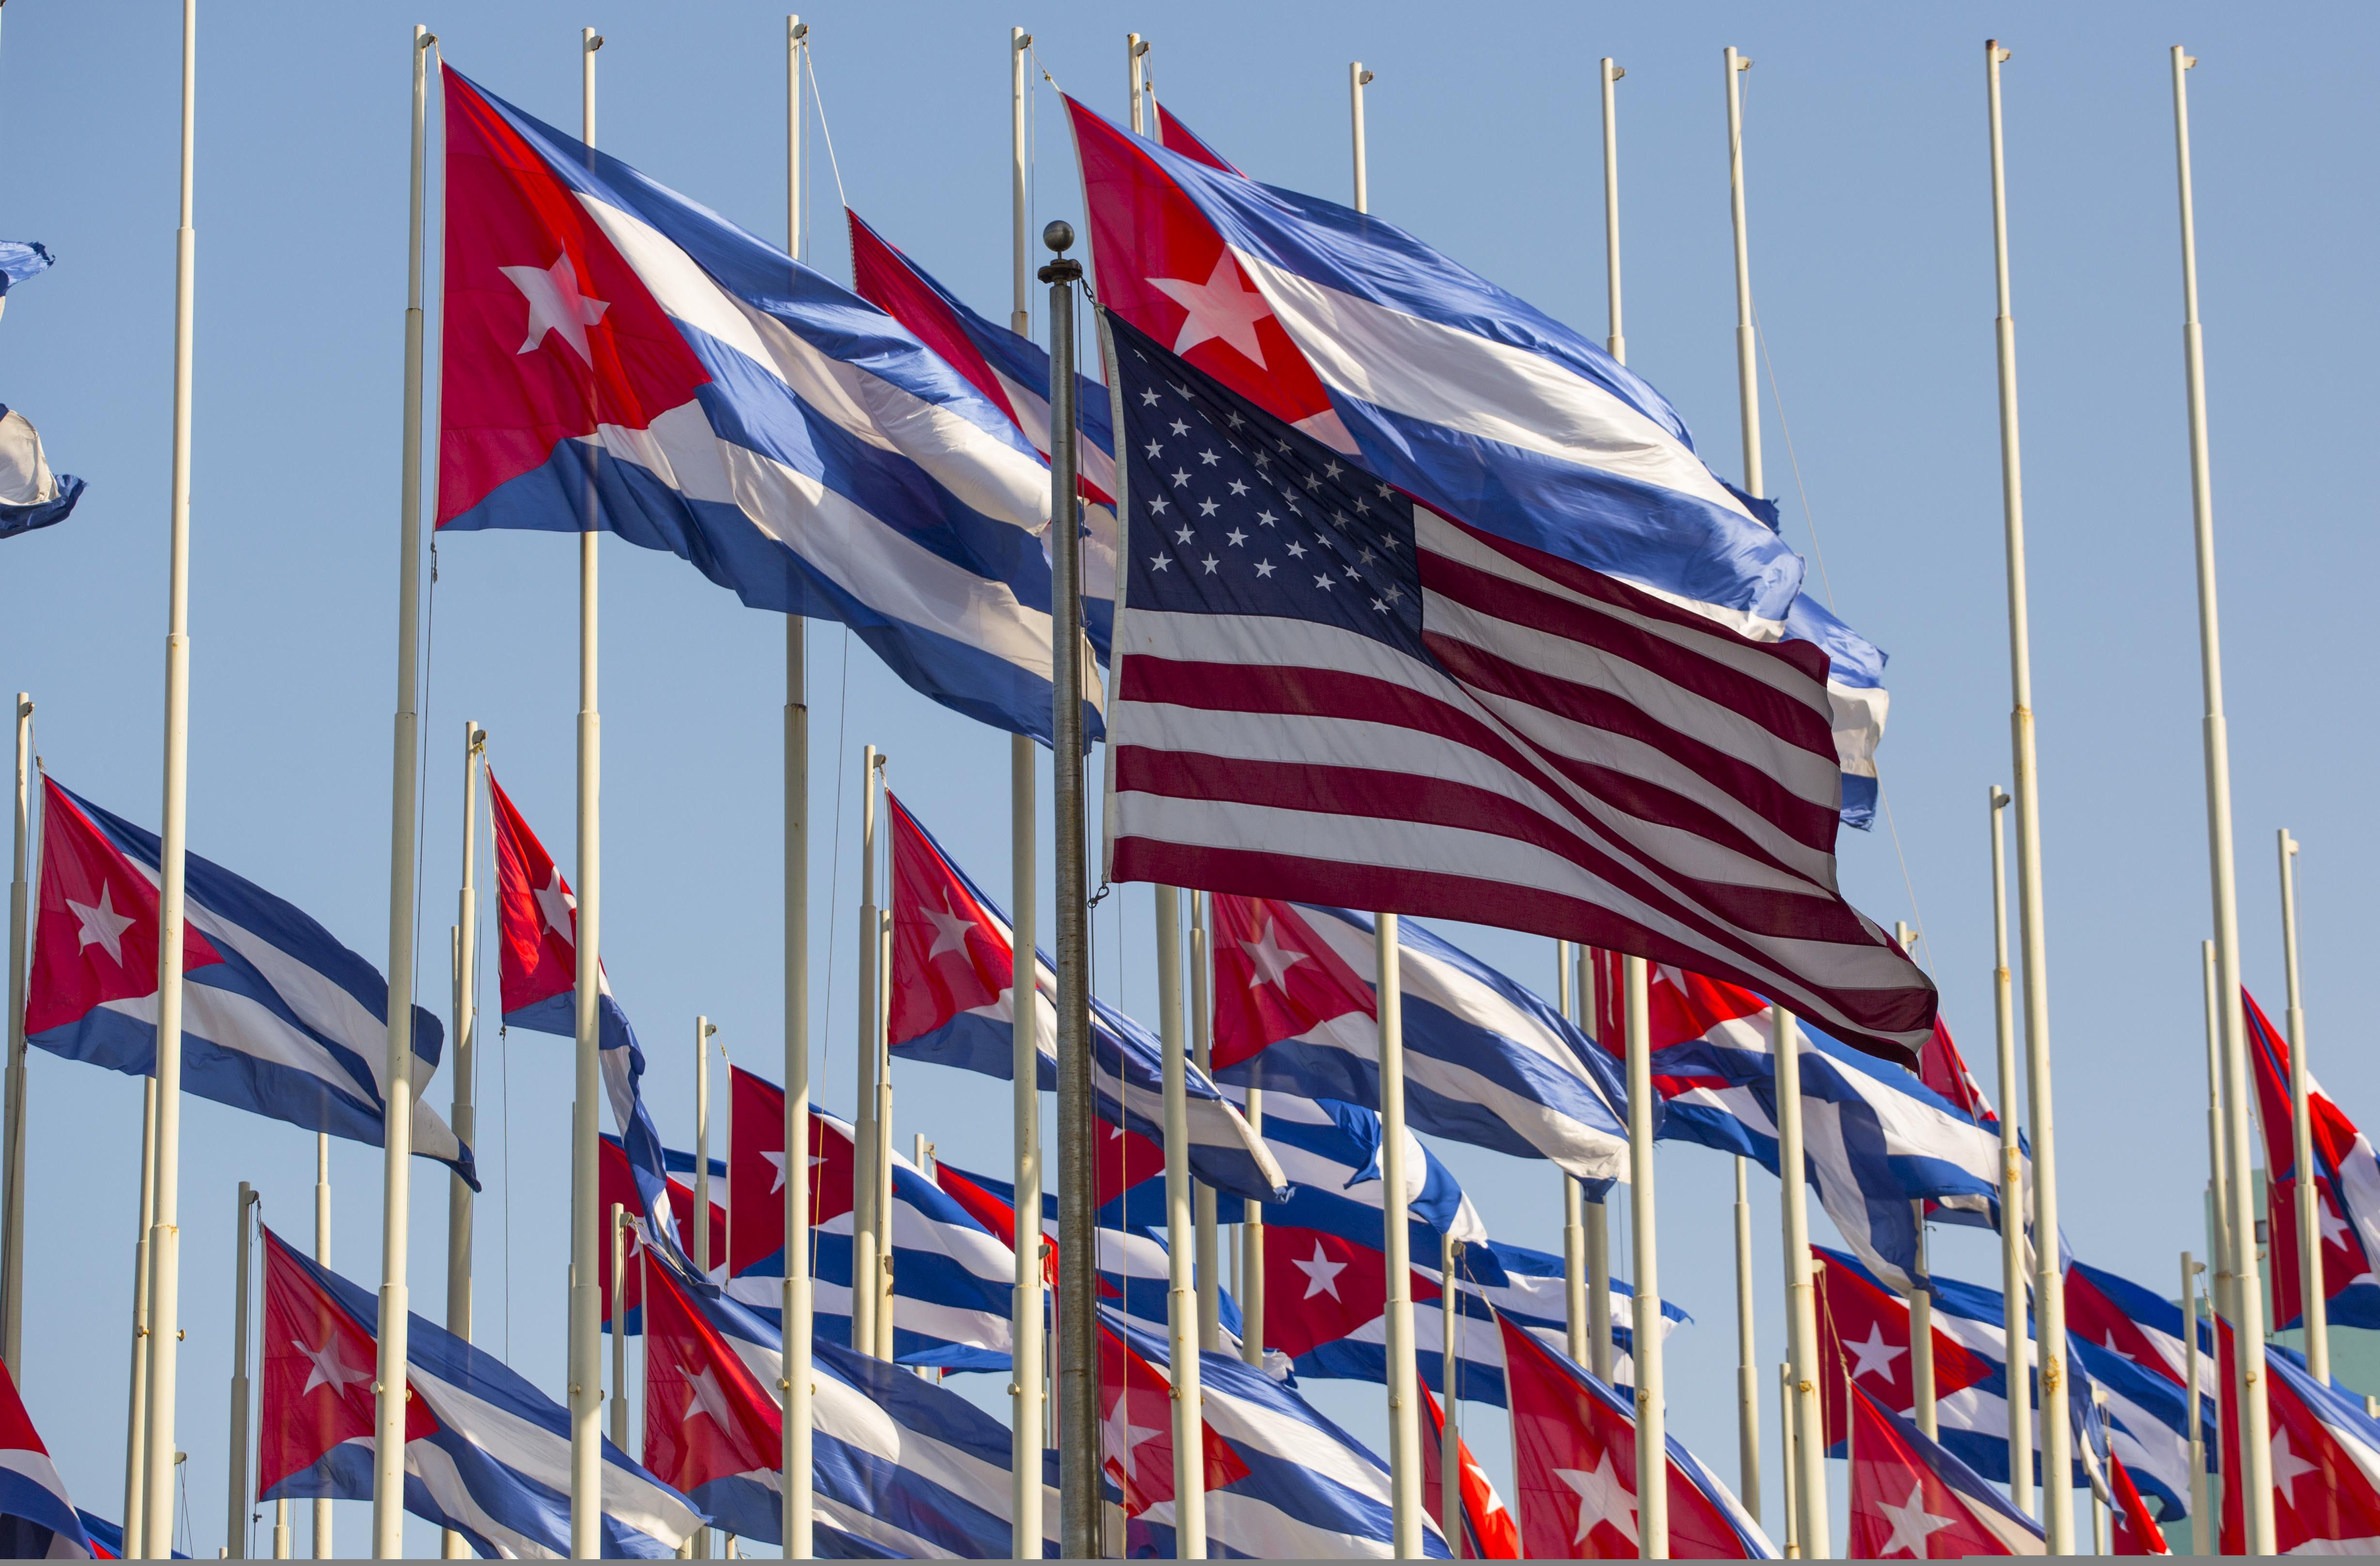 The U.S. flag flies outside the U.S. embassy near many Cuban flags hoisted on Revolution Day, in Havana, Cuba, Friday, Jan. 1, 2016. (AP Photo/Desmond Boylan)